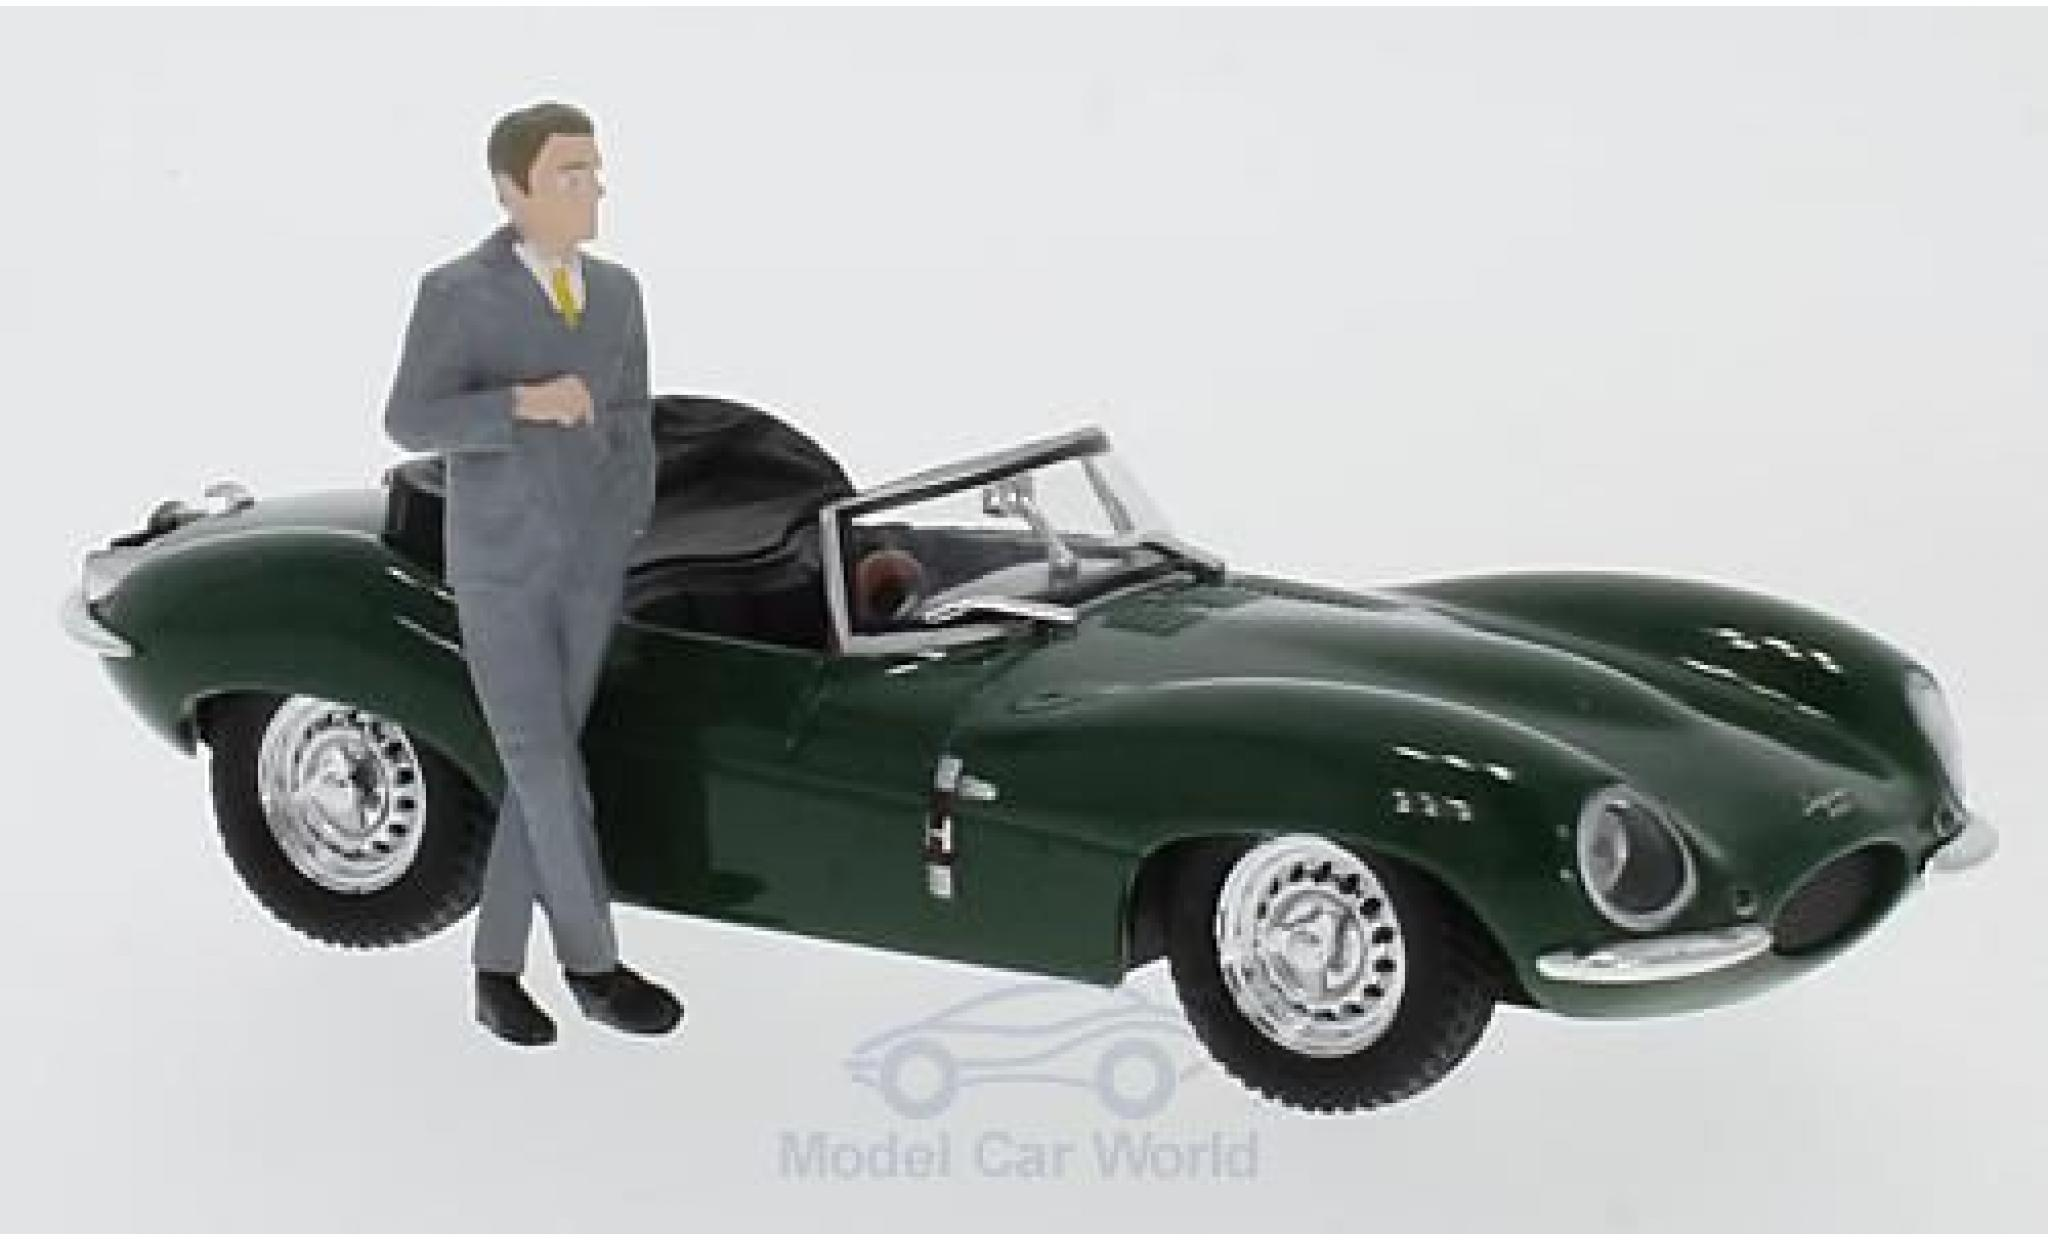 Jaguar XK SS 1/43 Greenlight verte RHD 1957 Steve McQueen Collection mit Fahrer Figur